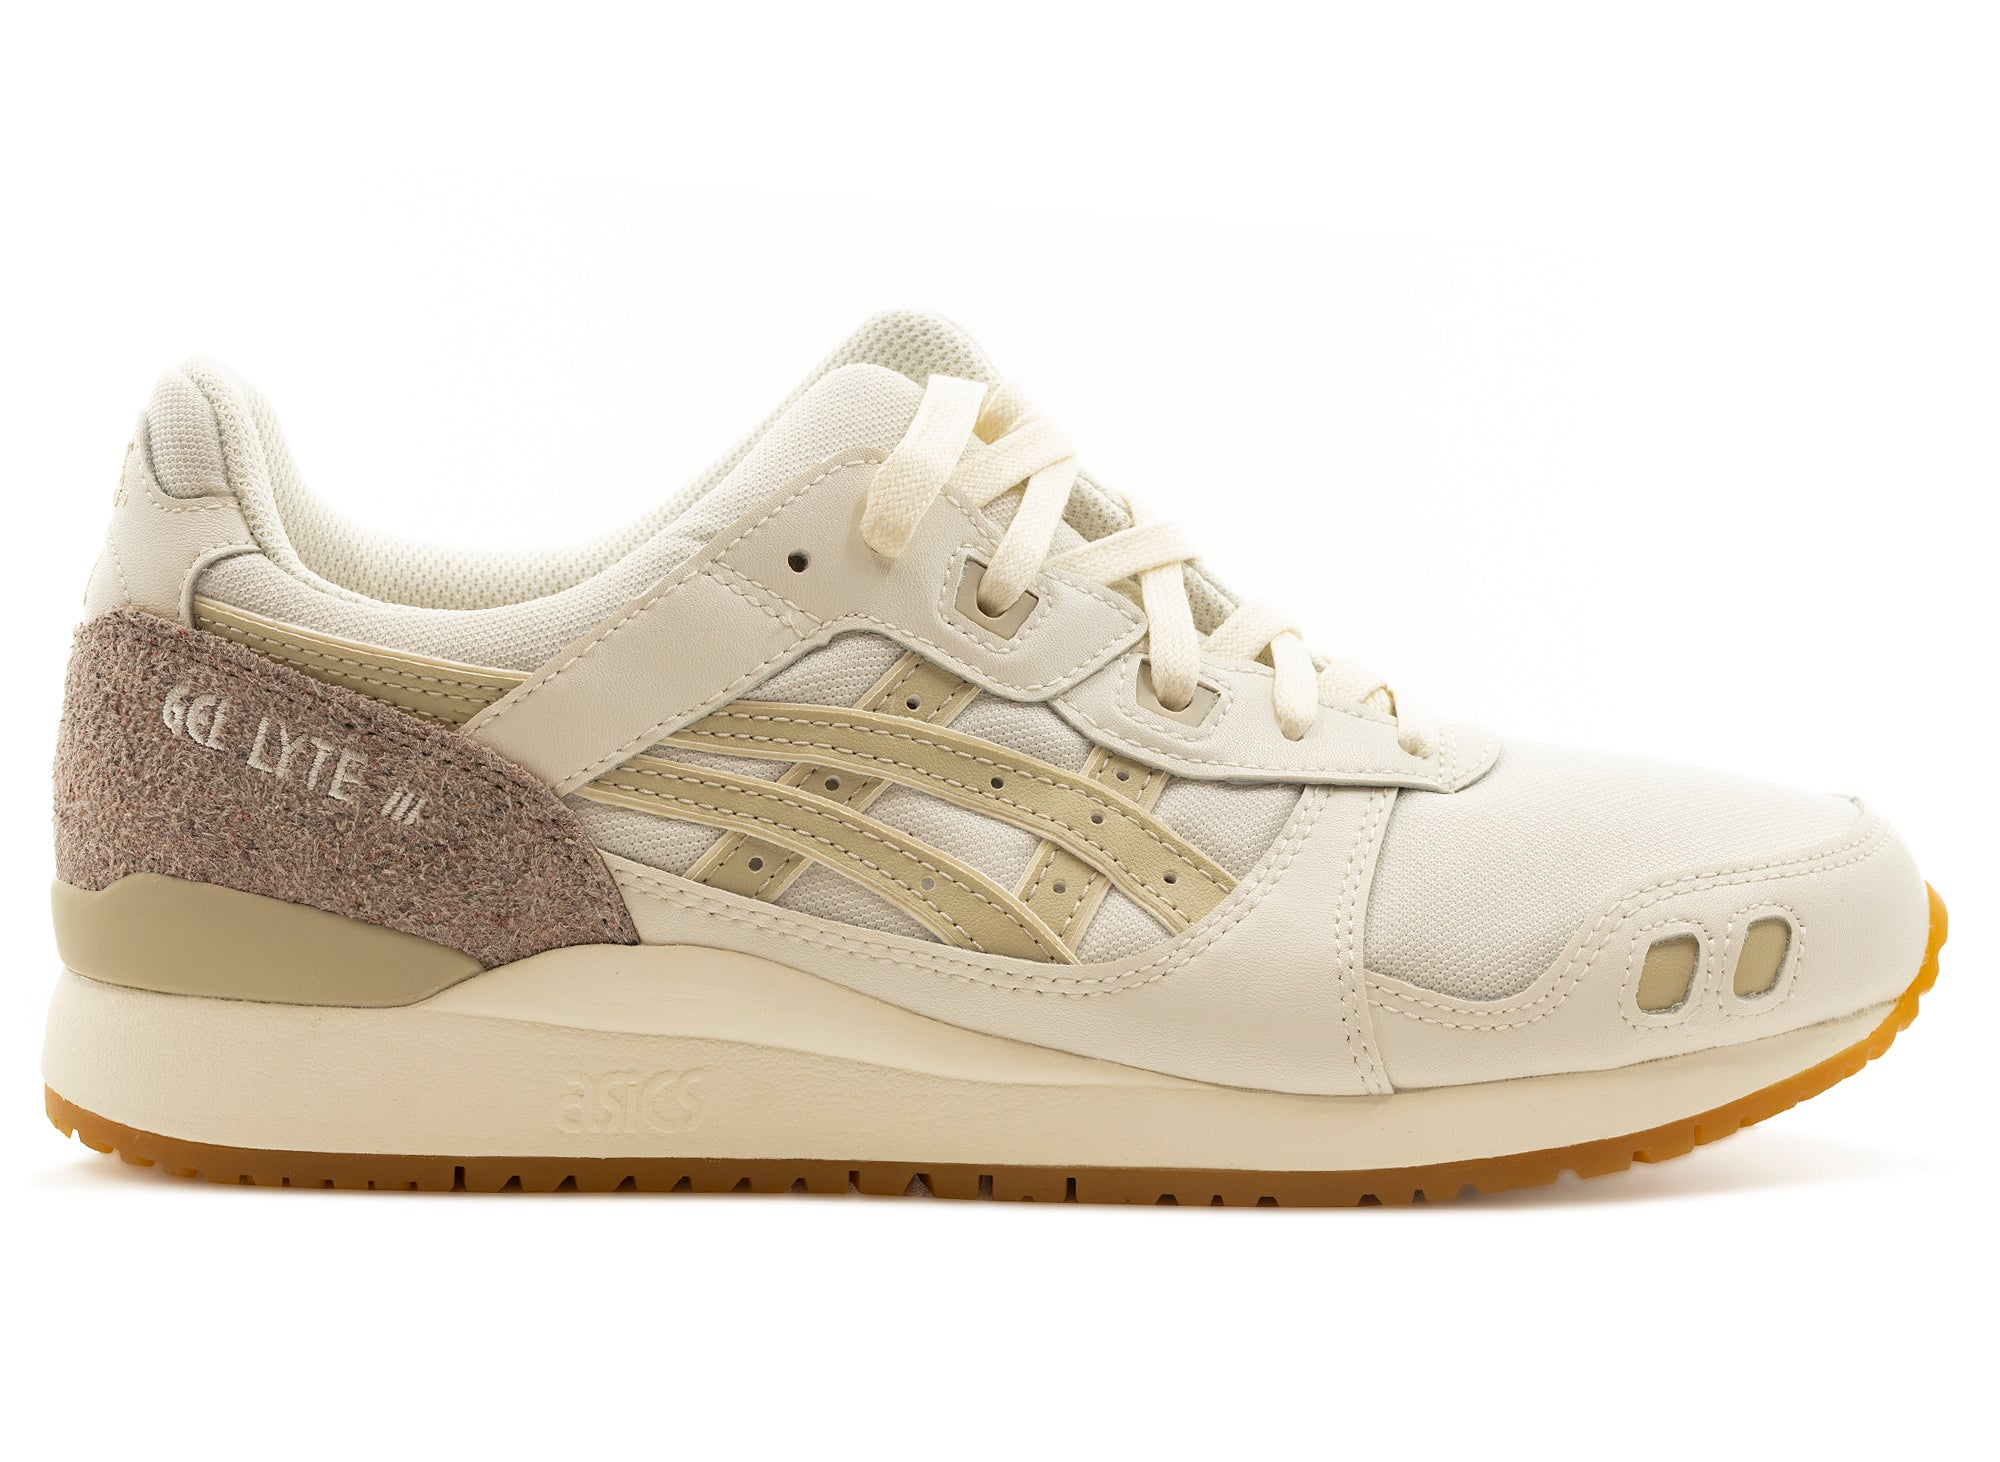 ASICS Gel-Lyte III OG Earth Day Pack 'Putty' xld